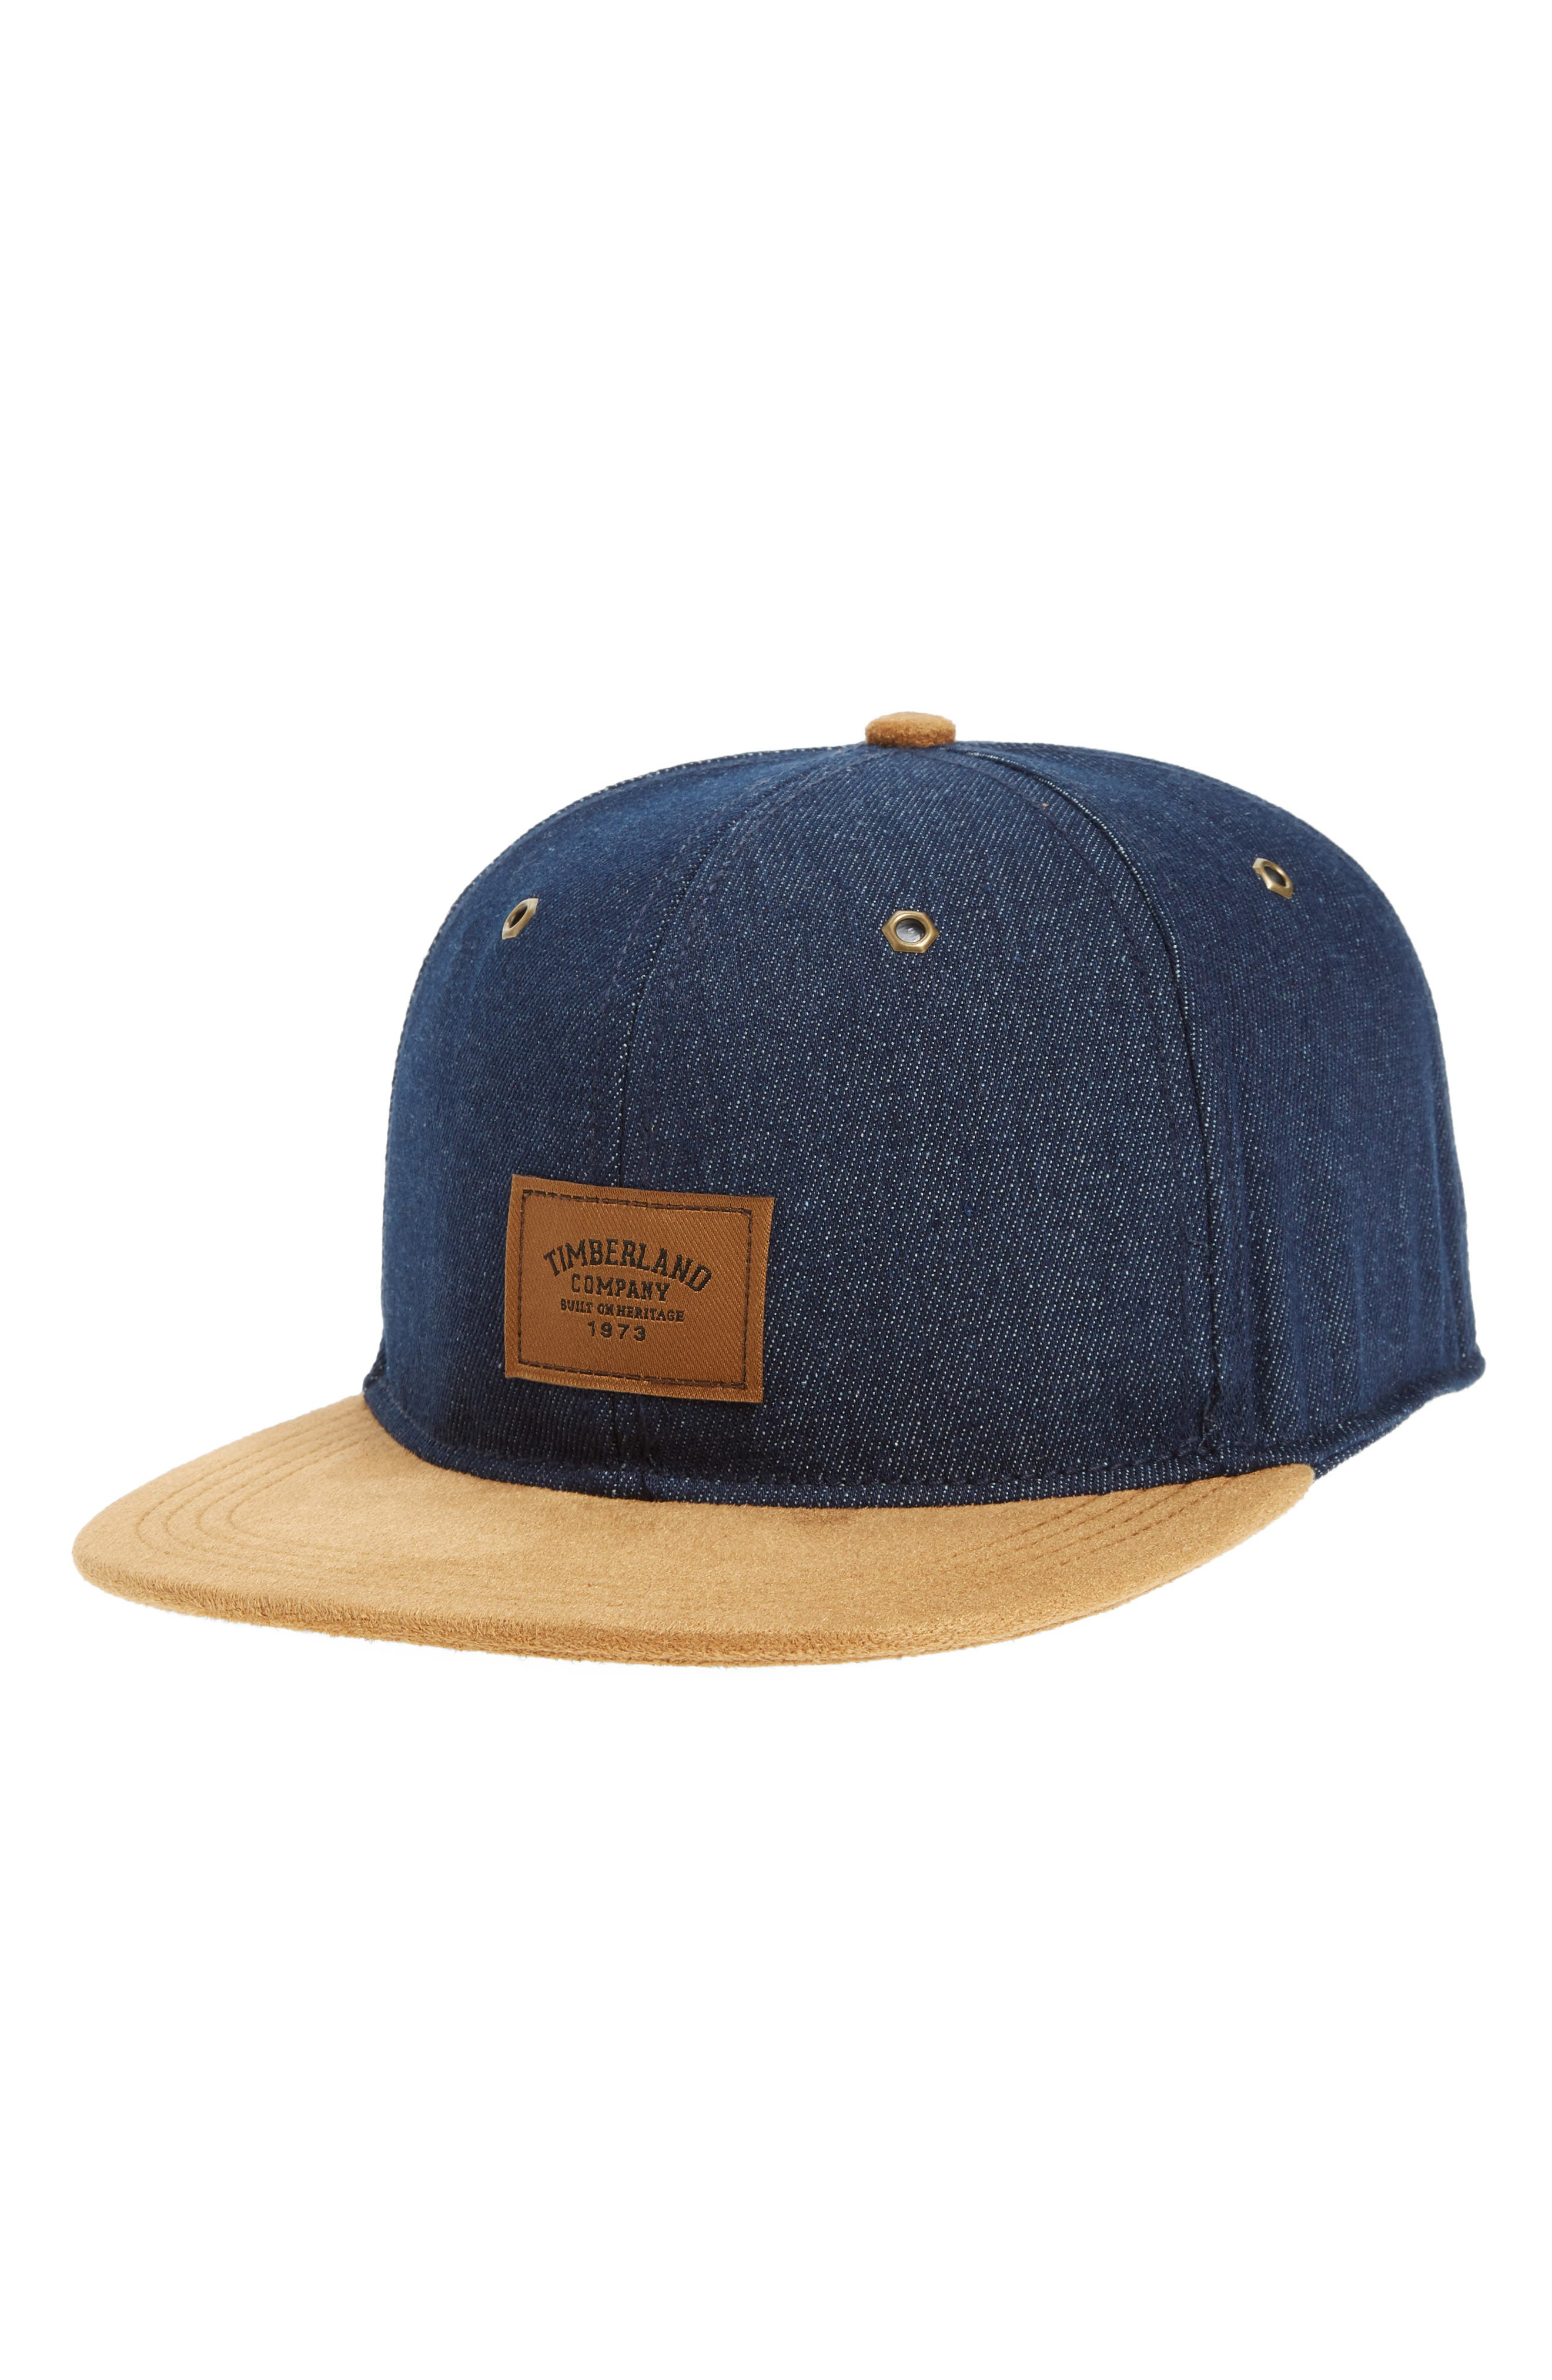 6ae558cfd32d5 Men s Timberland Hats